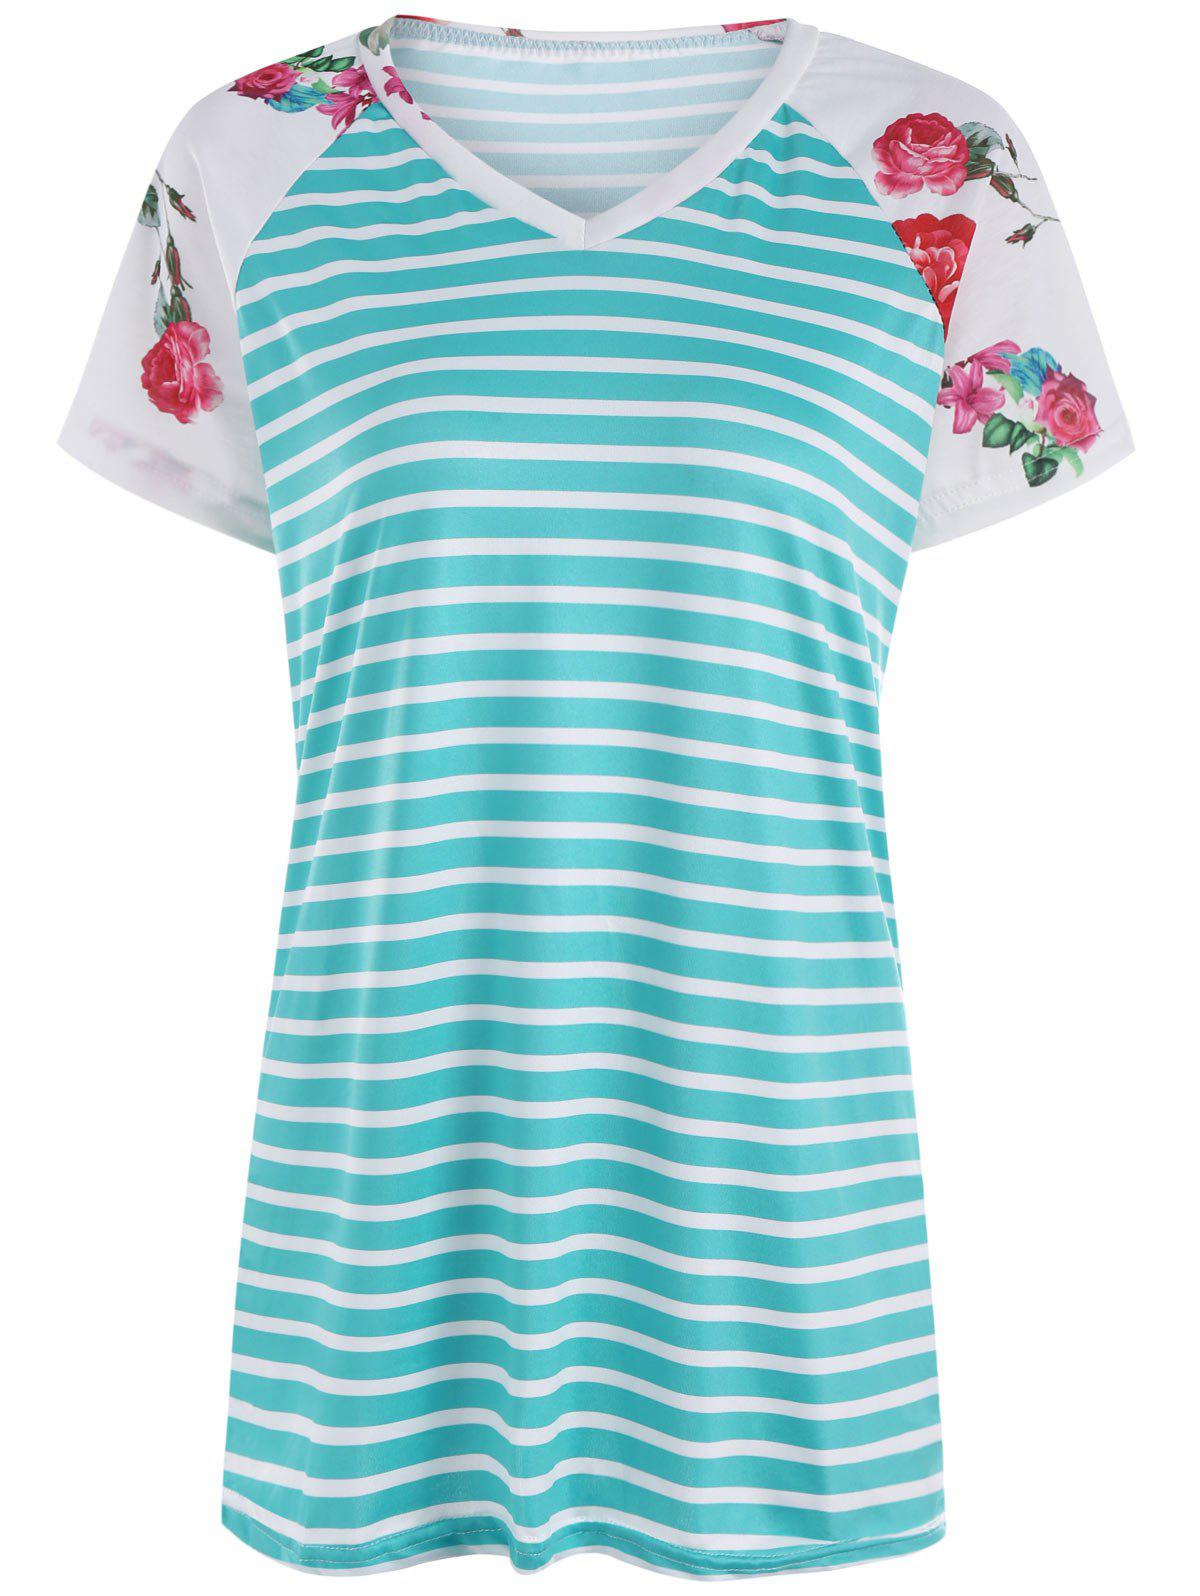 Floral Raglan Sleeve Striped Tunic T Shirt striped tunic floral embroidered shirt